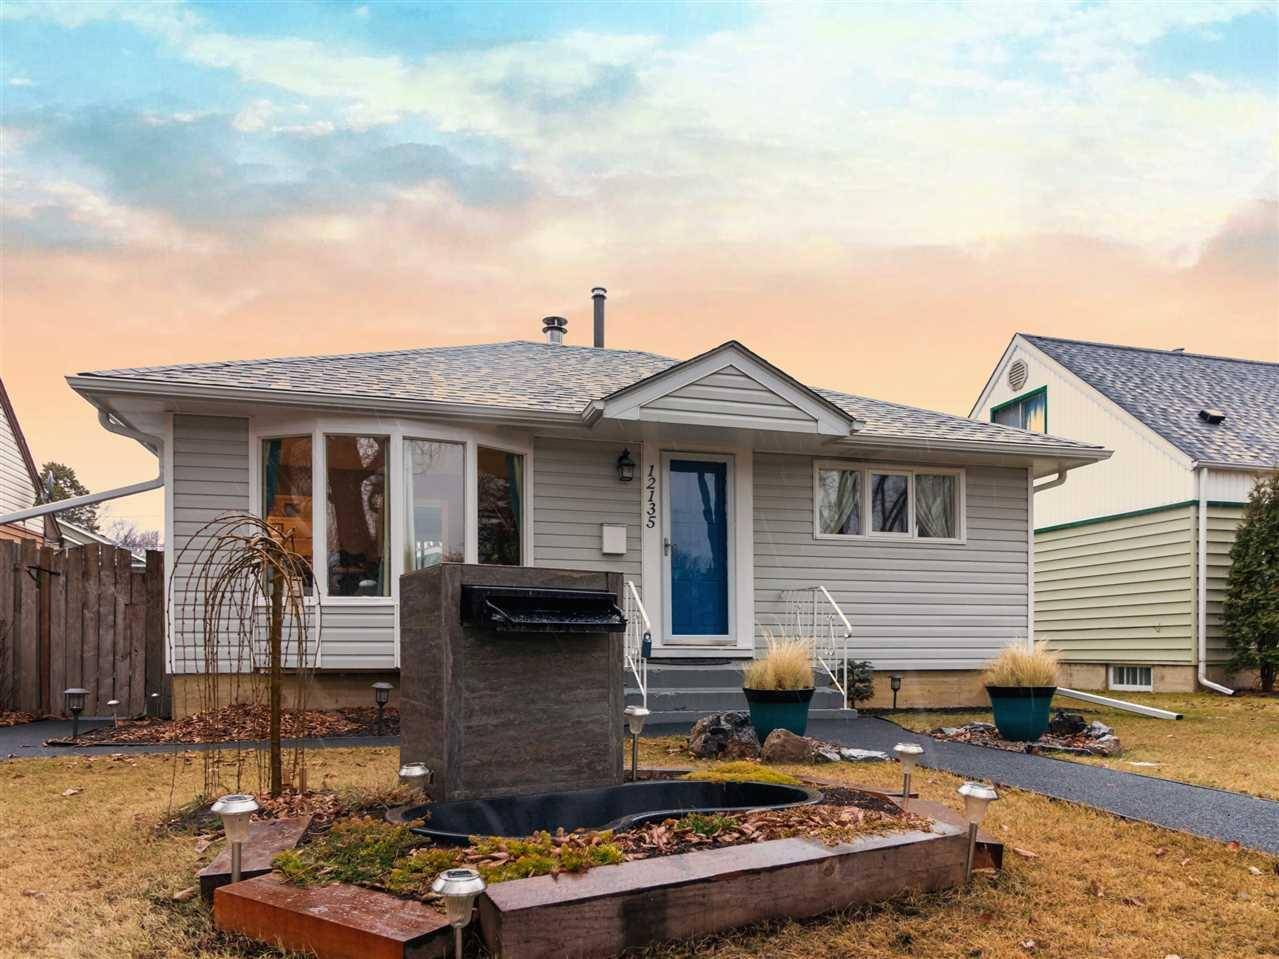 House for sale at 12135 60 St Nw Edmonton Alberta - MLS: E4180618